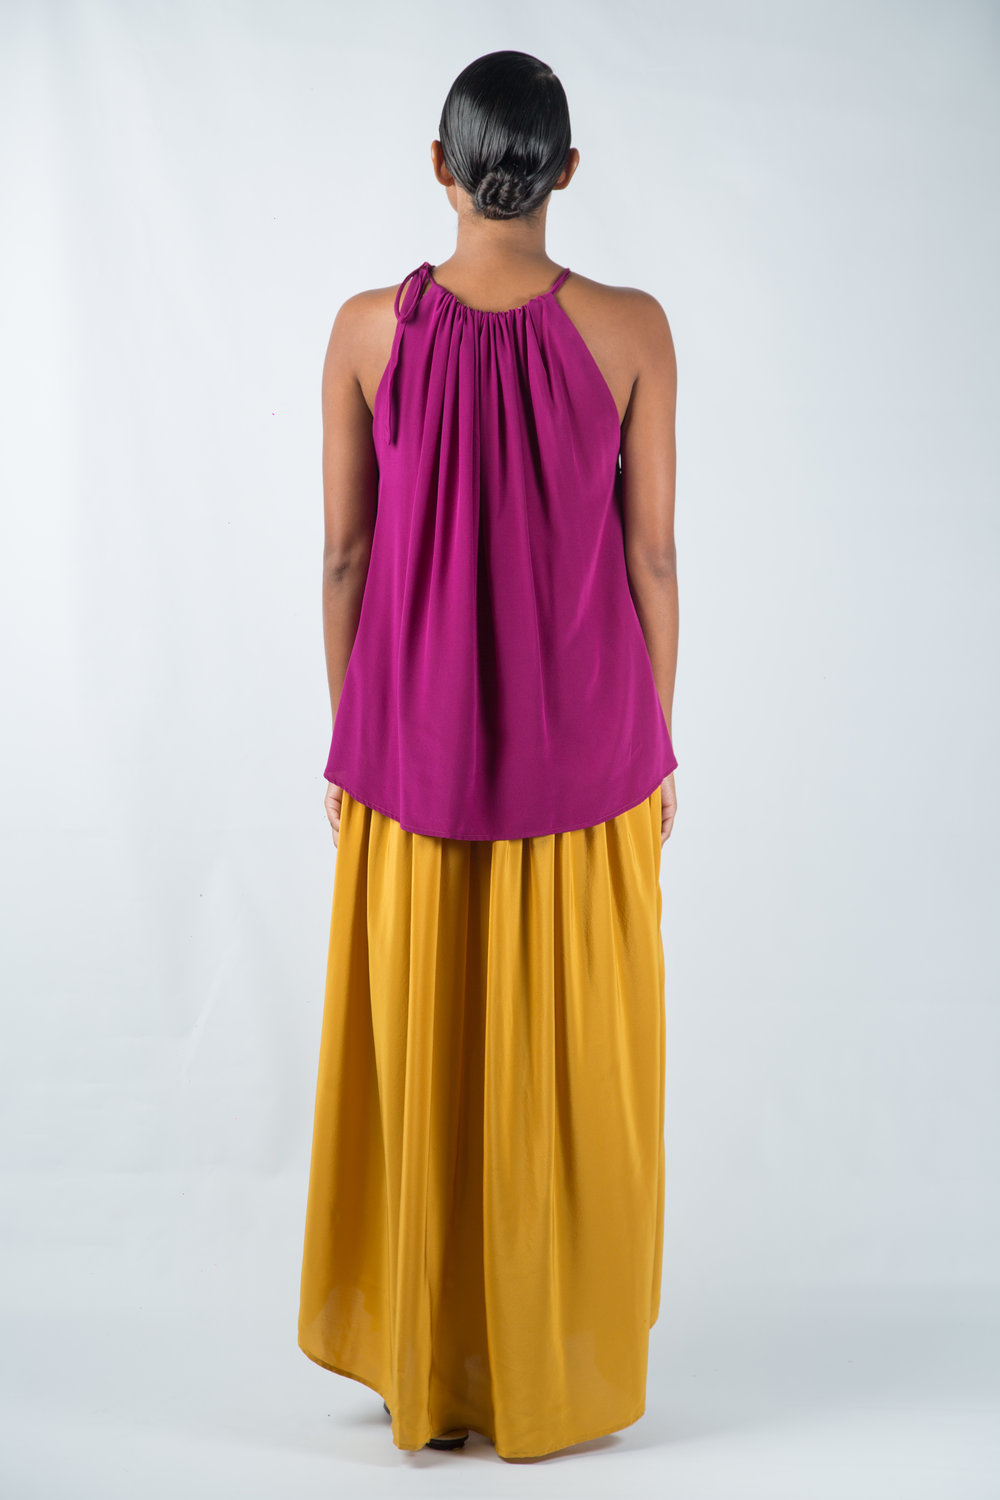 Asha layer dress - plum_saffron 2.jpg